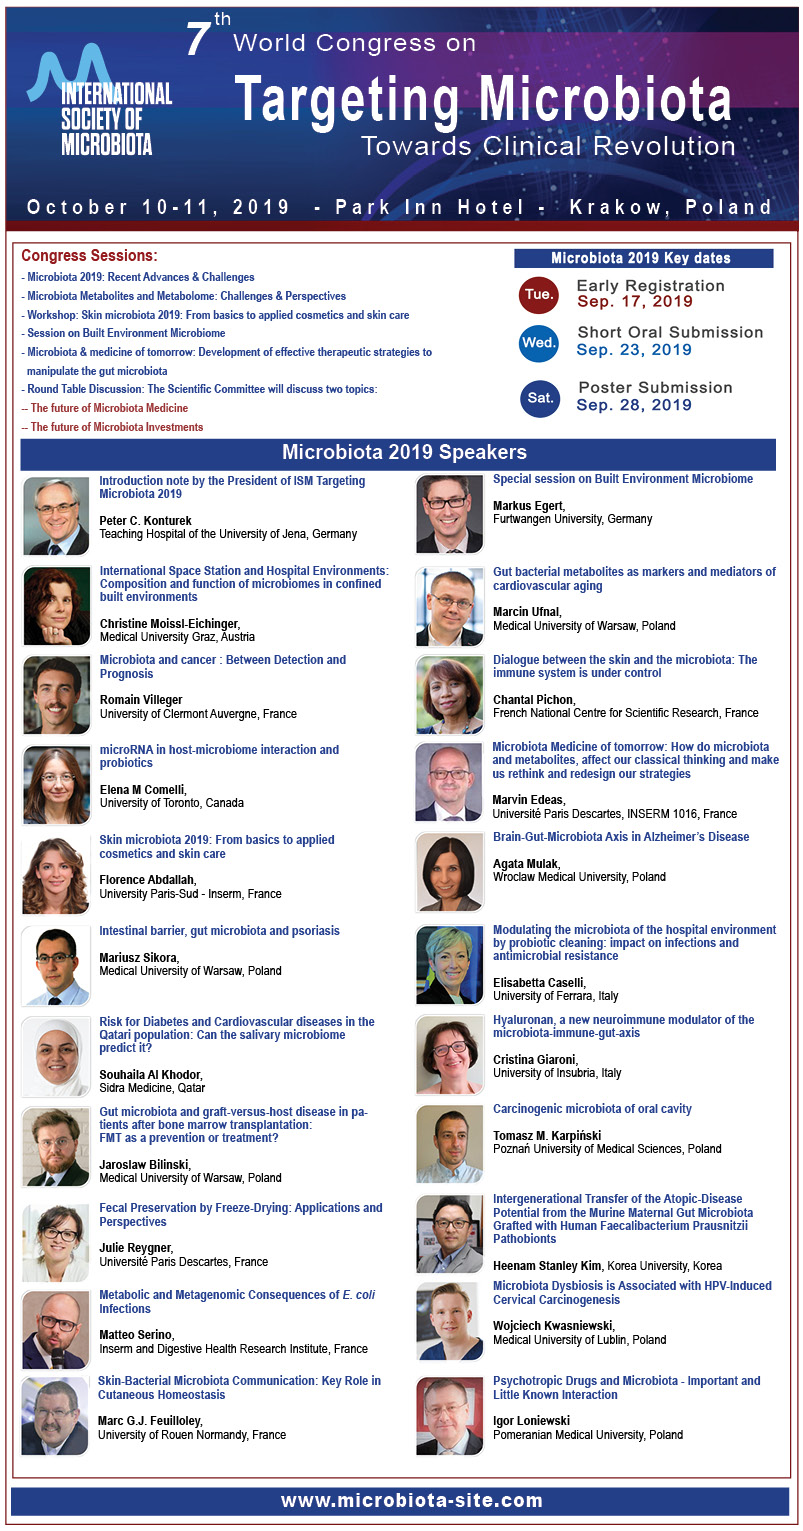 https://www.microbiota-site.com/images/2019/vrac/Microbiota_Speakers_2019_speakers_flyer_V10_small_2.jpg